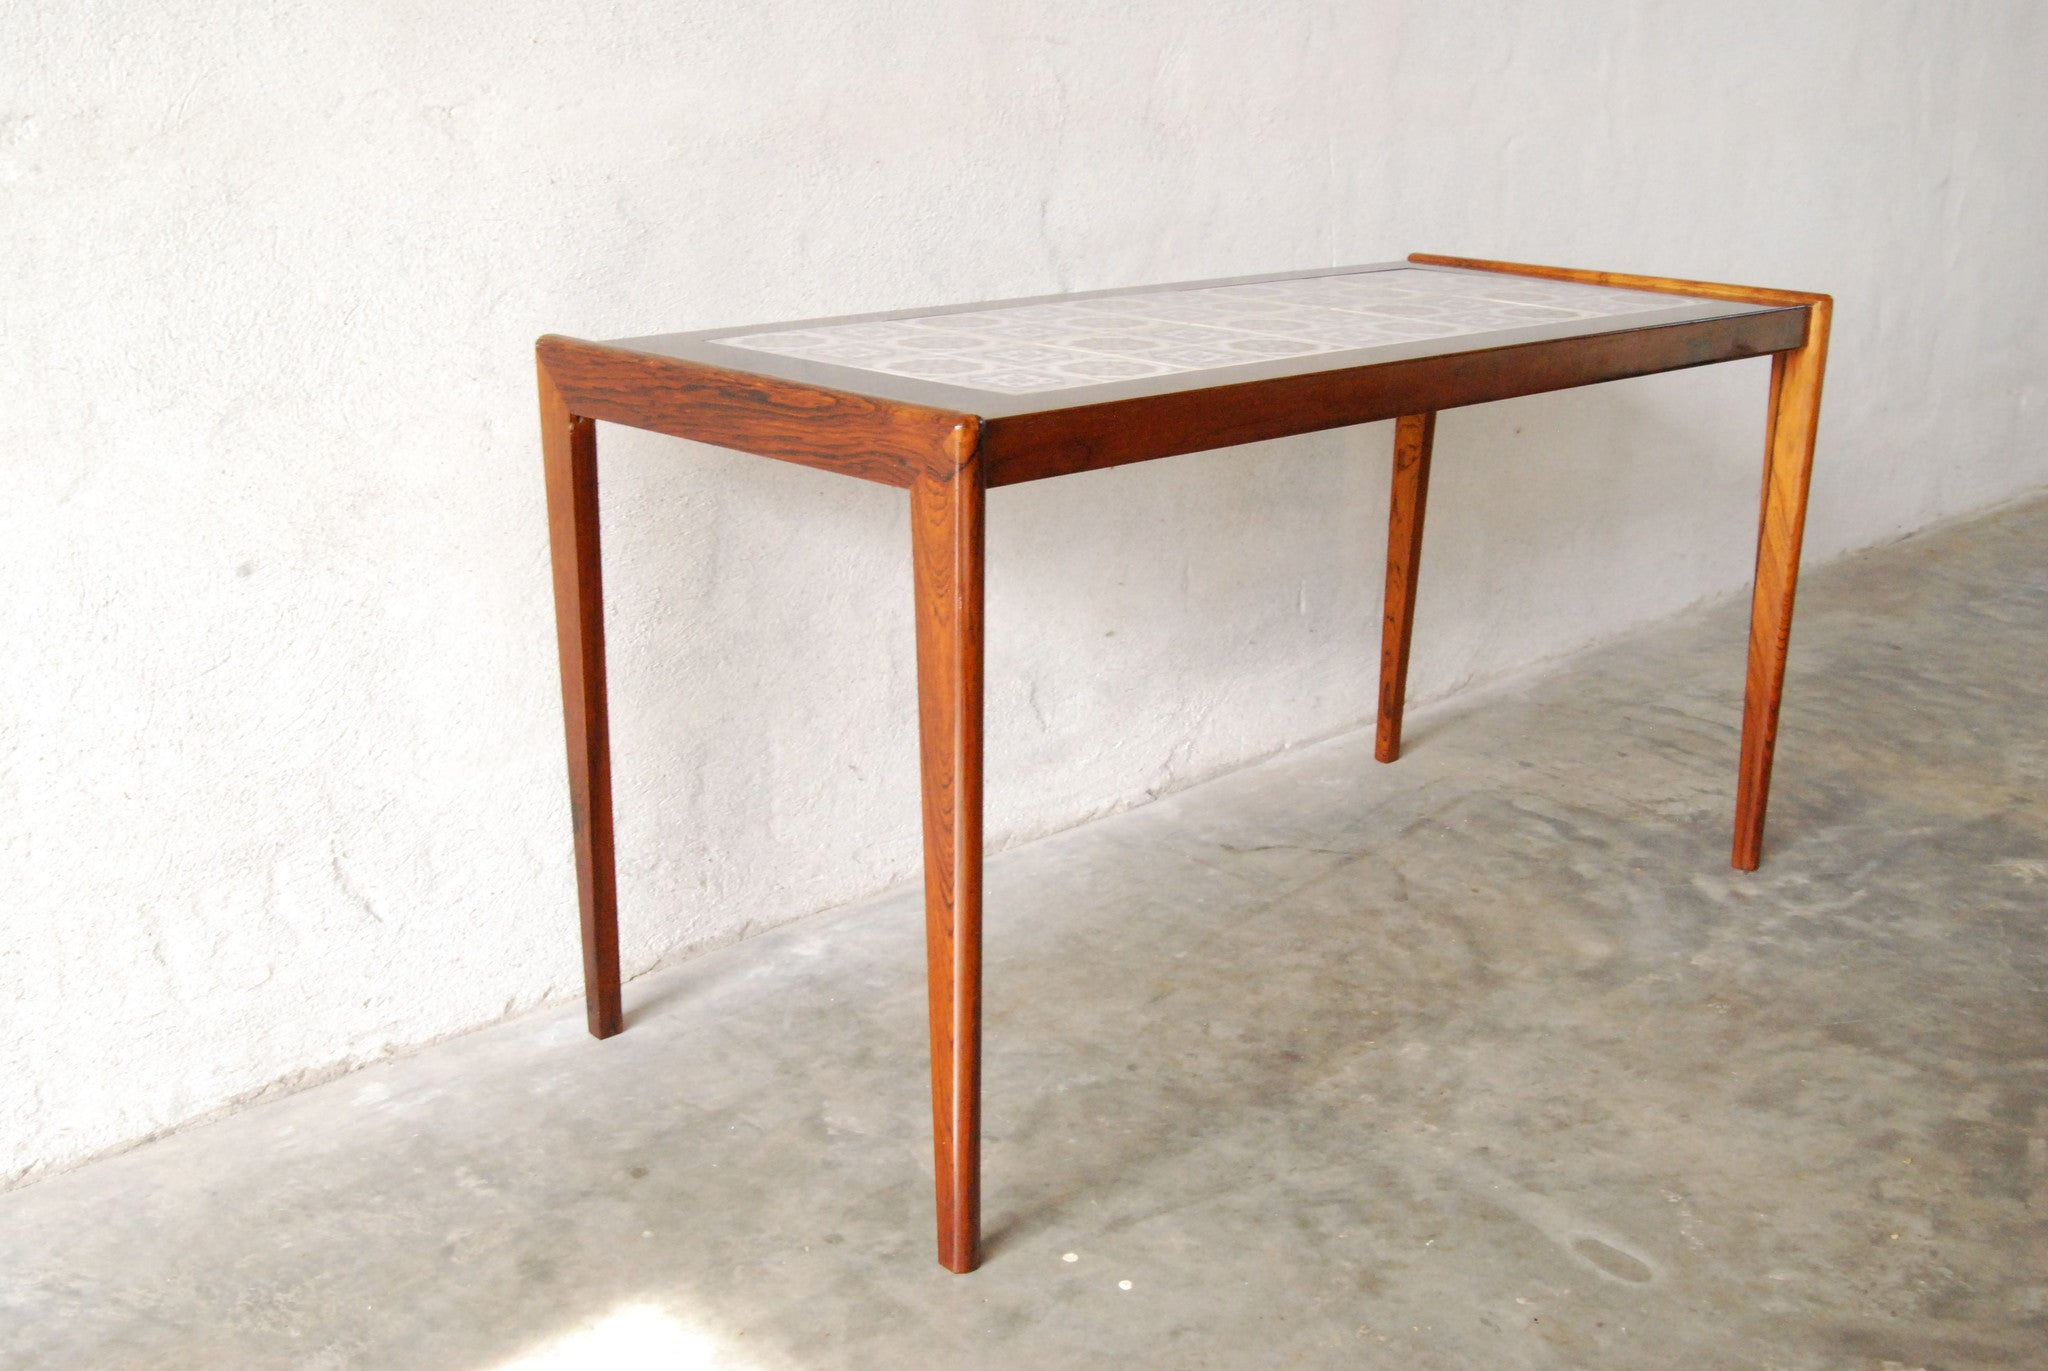 Chase & Sorensen Tiled rosewood hallway/coffee table